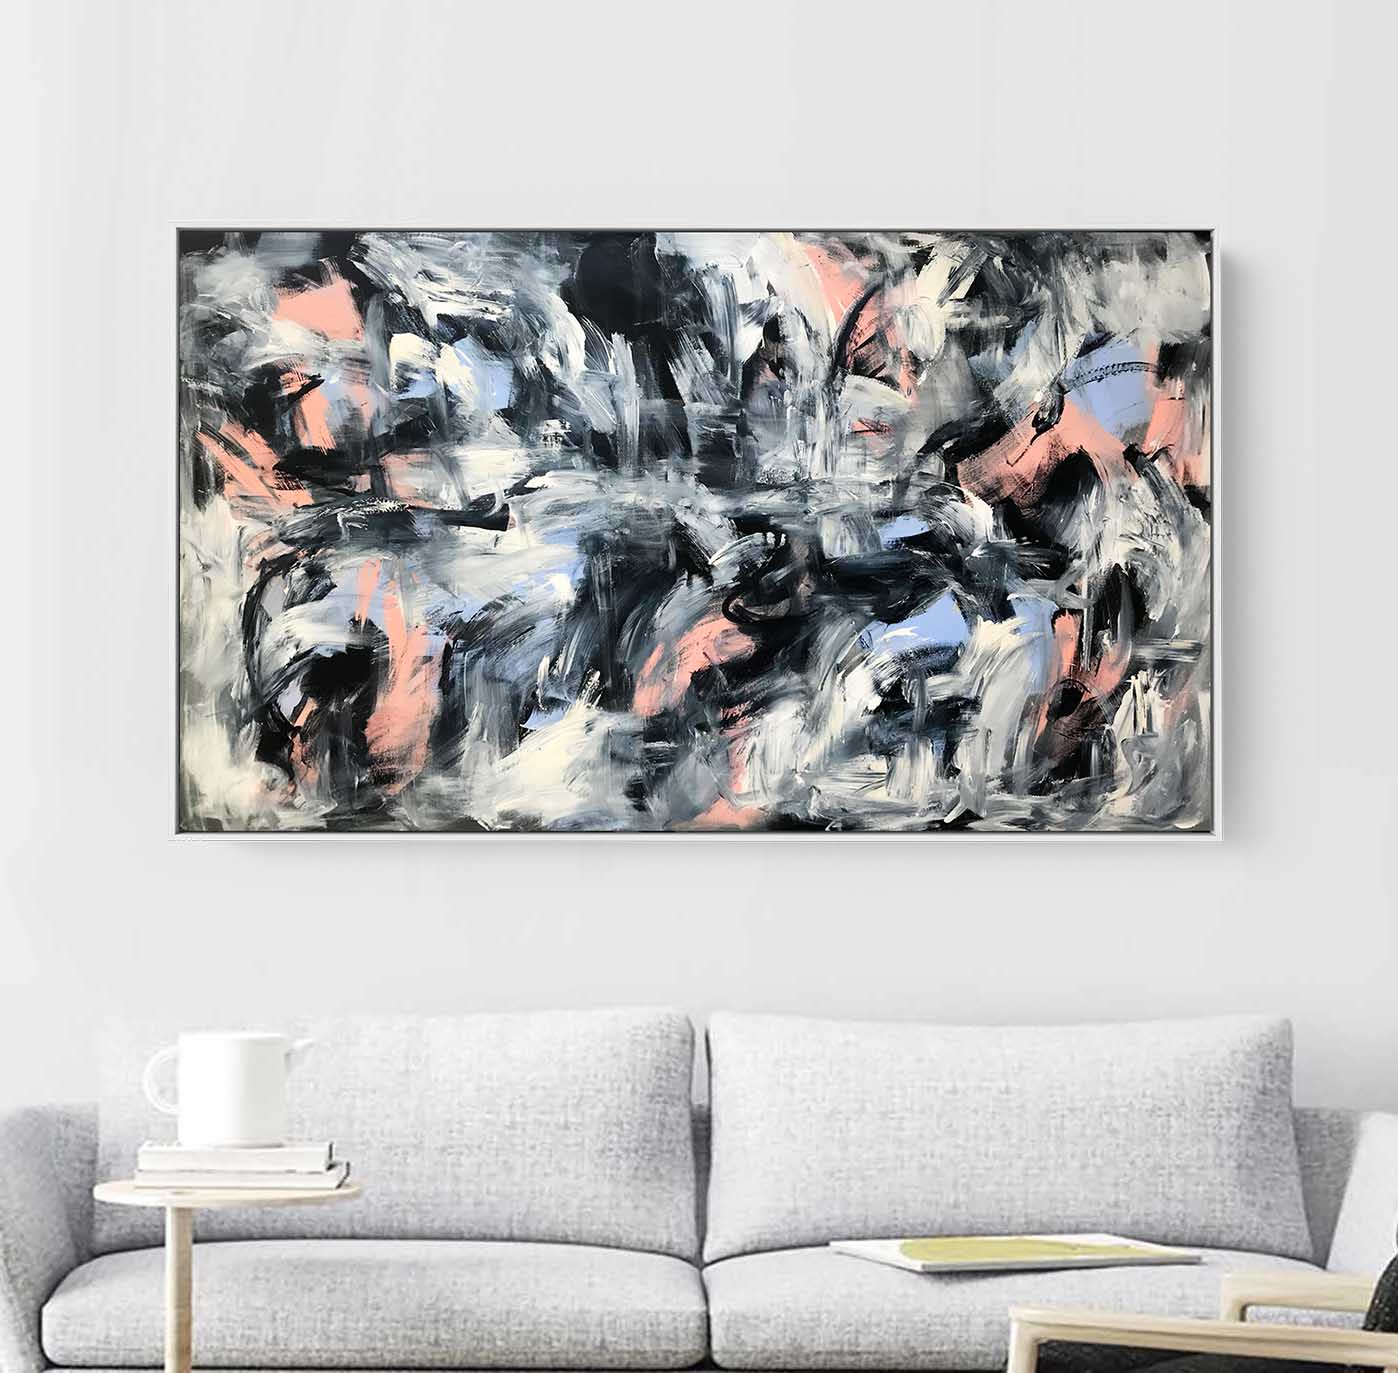 Disappear - 152x92 cm - Original Painting